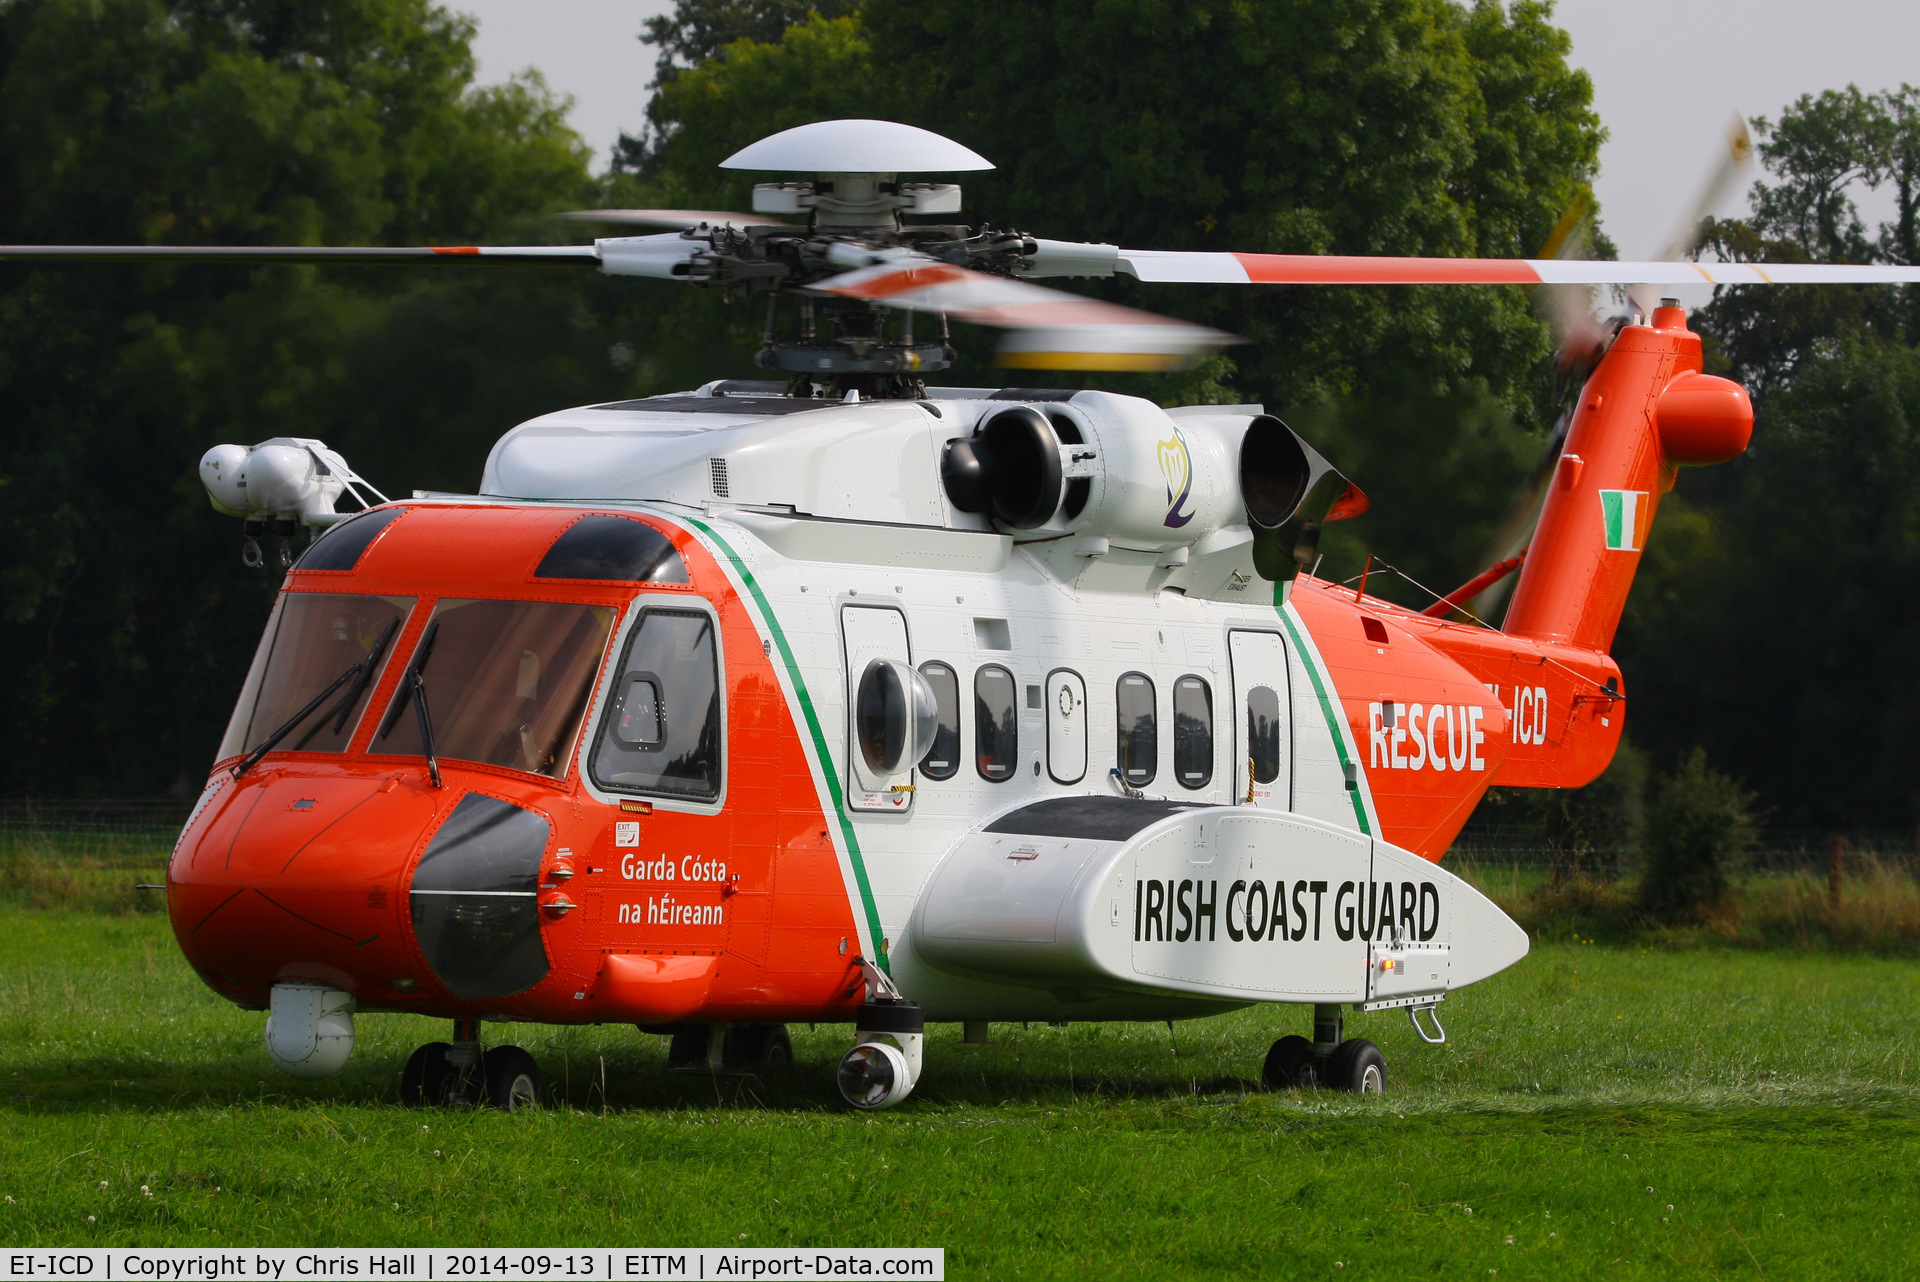 EI-ICD, 2007 Sikorsky S-92A C/N 920052, at the Trim airfield fly in, County Meath, Ireland